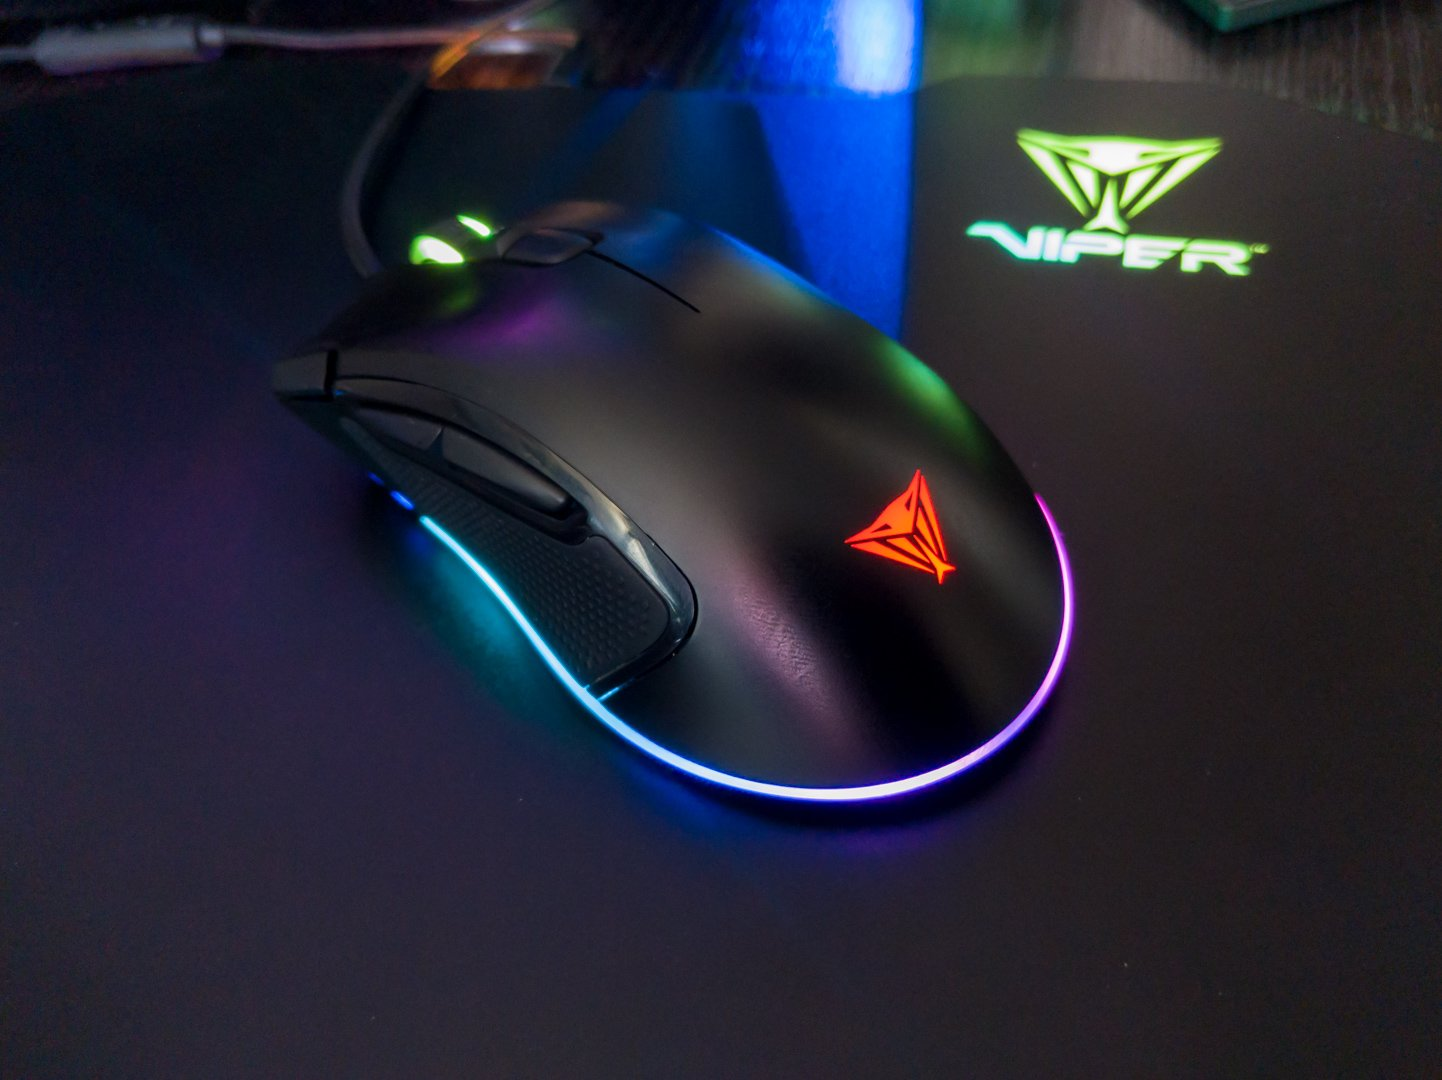 Overview Viper Gaming V551 Mouse - Review